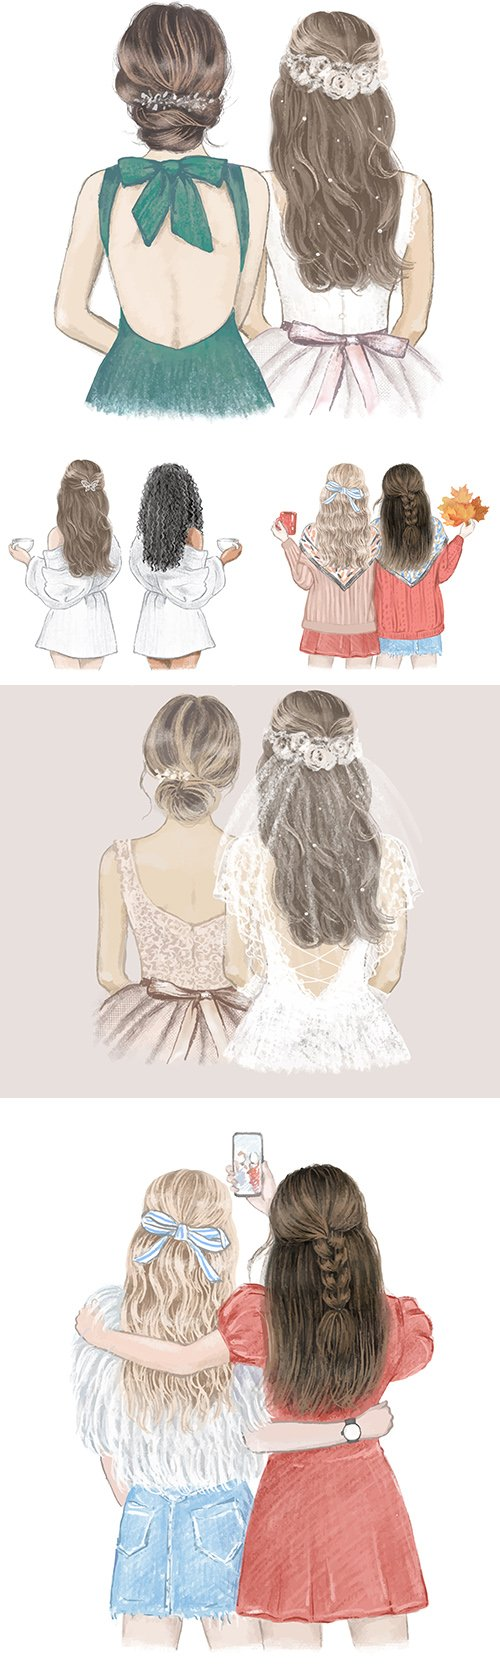 Girls with a beautiful hairstyle turned back illustration